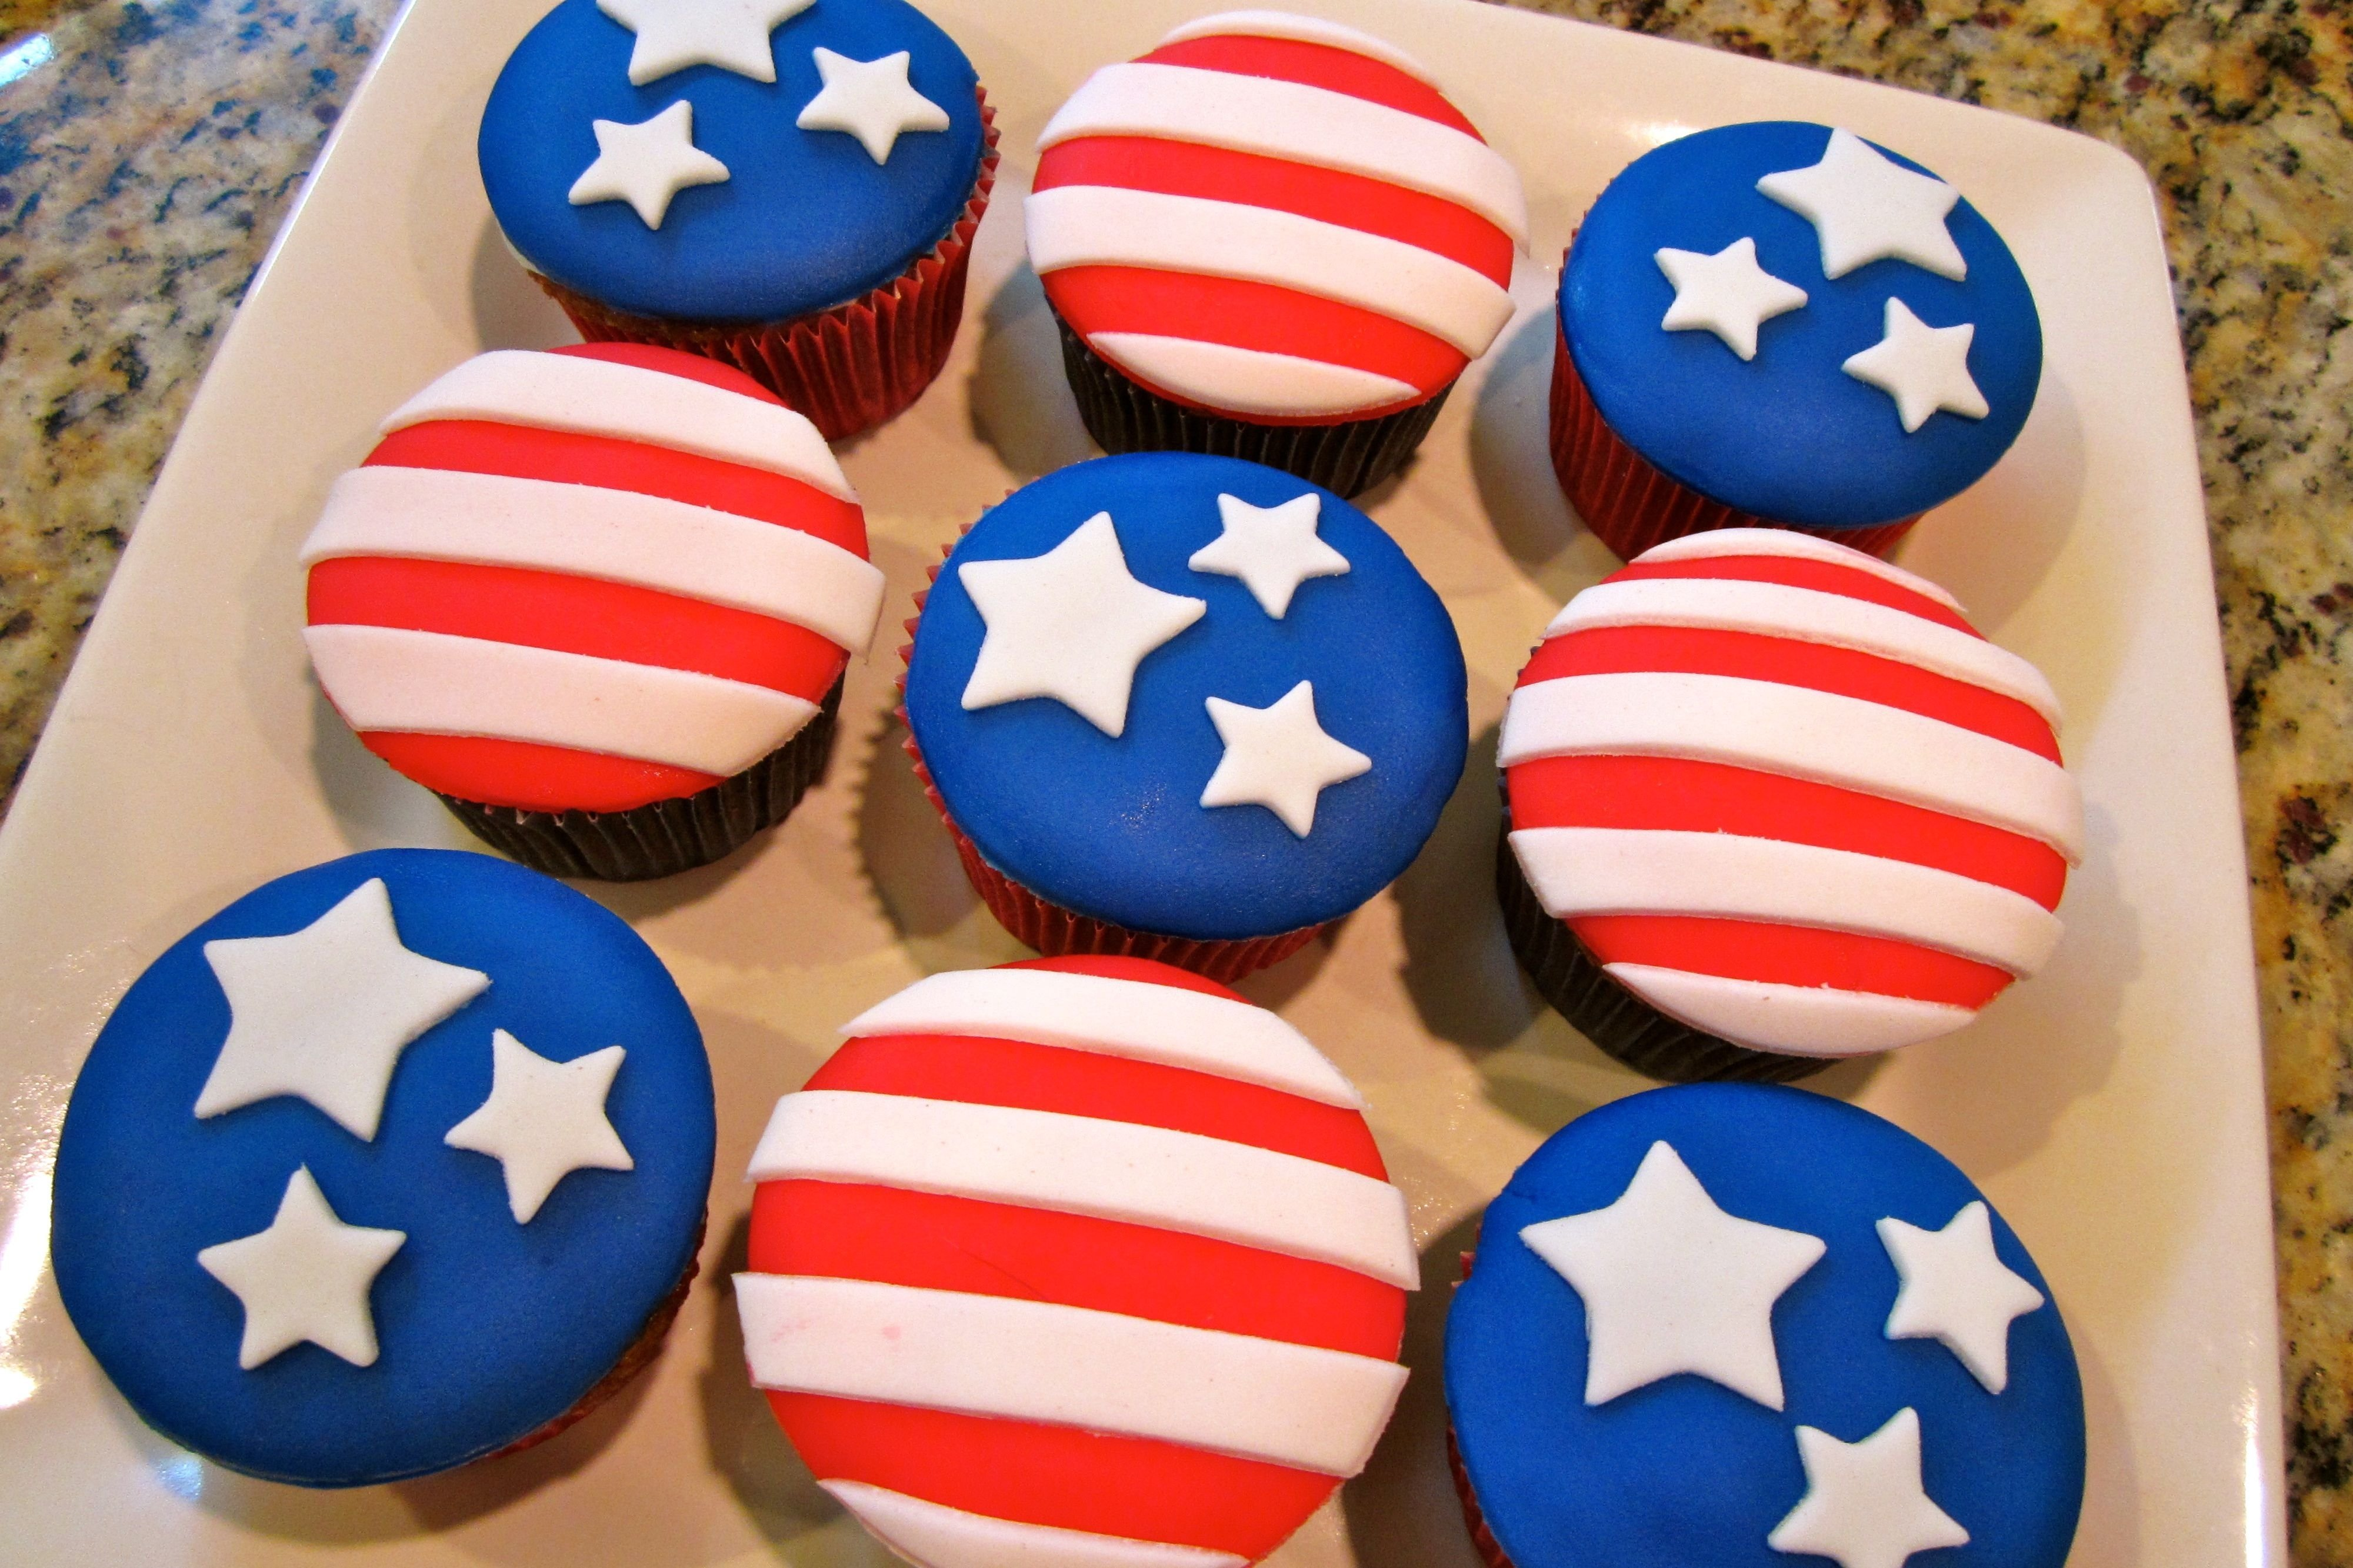 10 Elegant Fourth Of July Cupcake Ideas 4th of july cupcakes recipes hubs all types of cakes and treats 2020